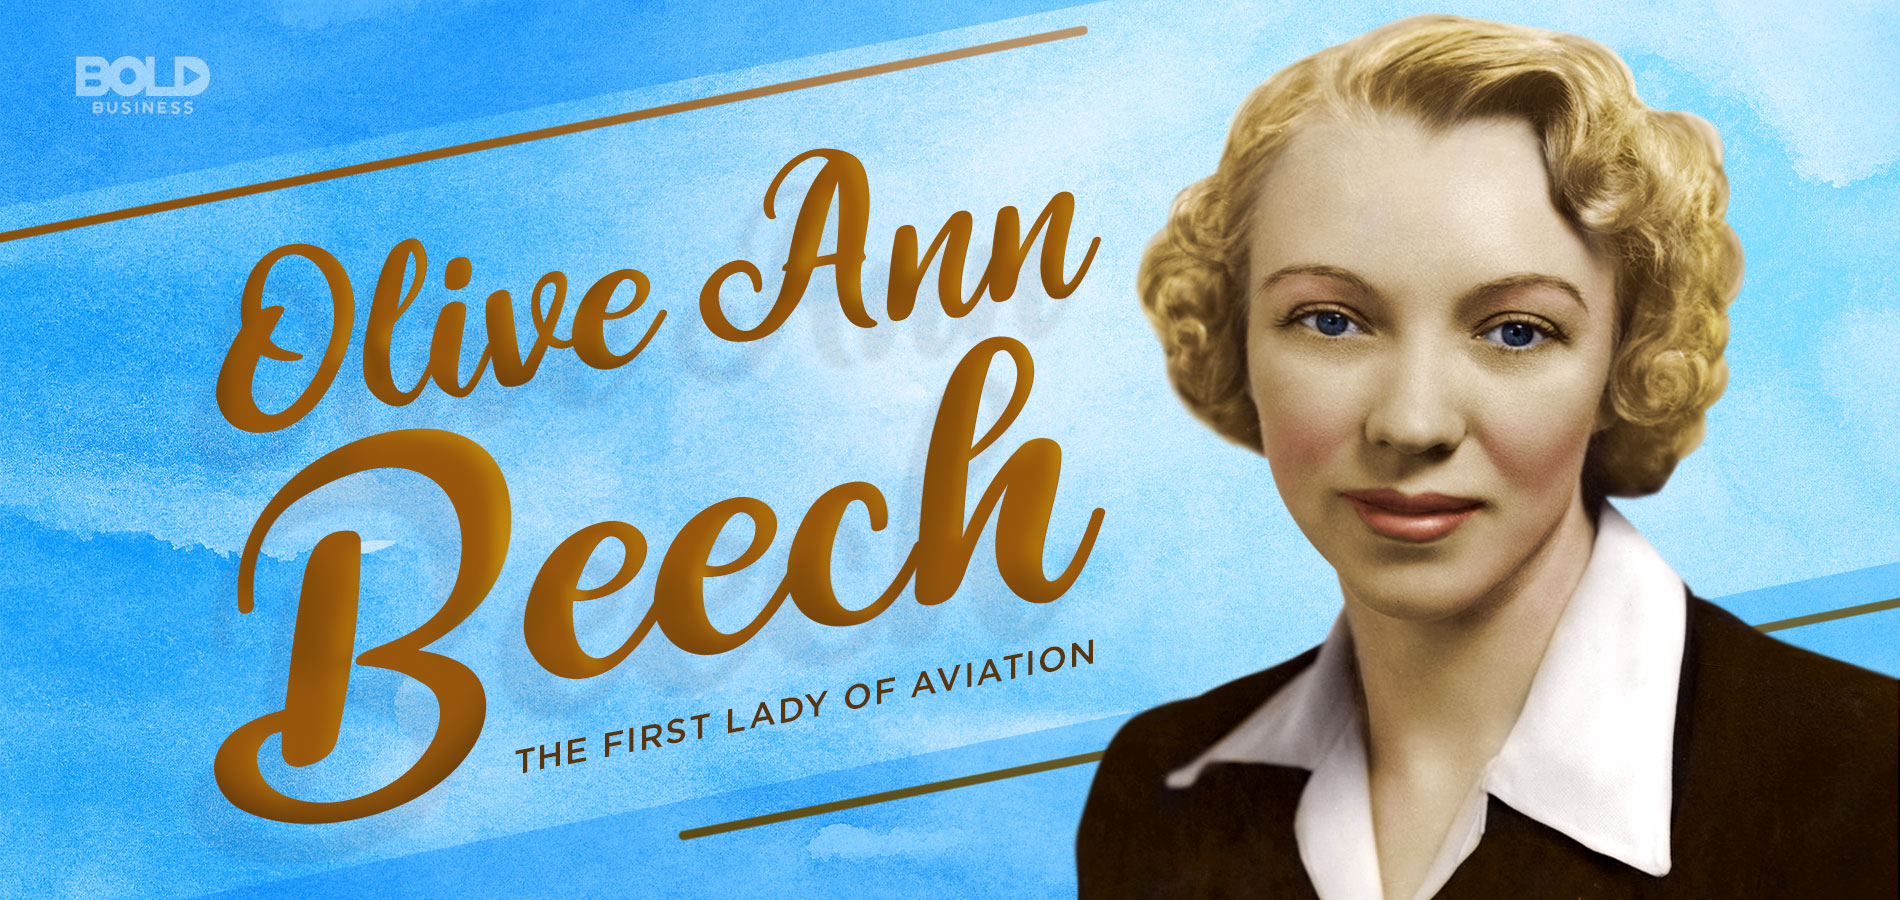 a photo of Olive Ann Beech with her title as the